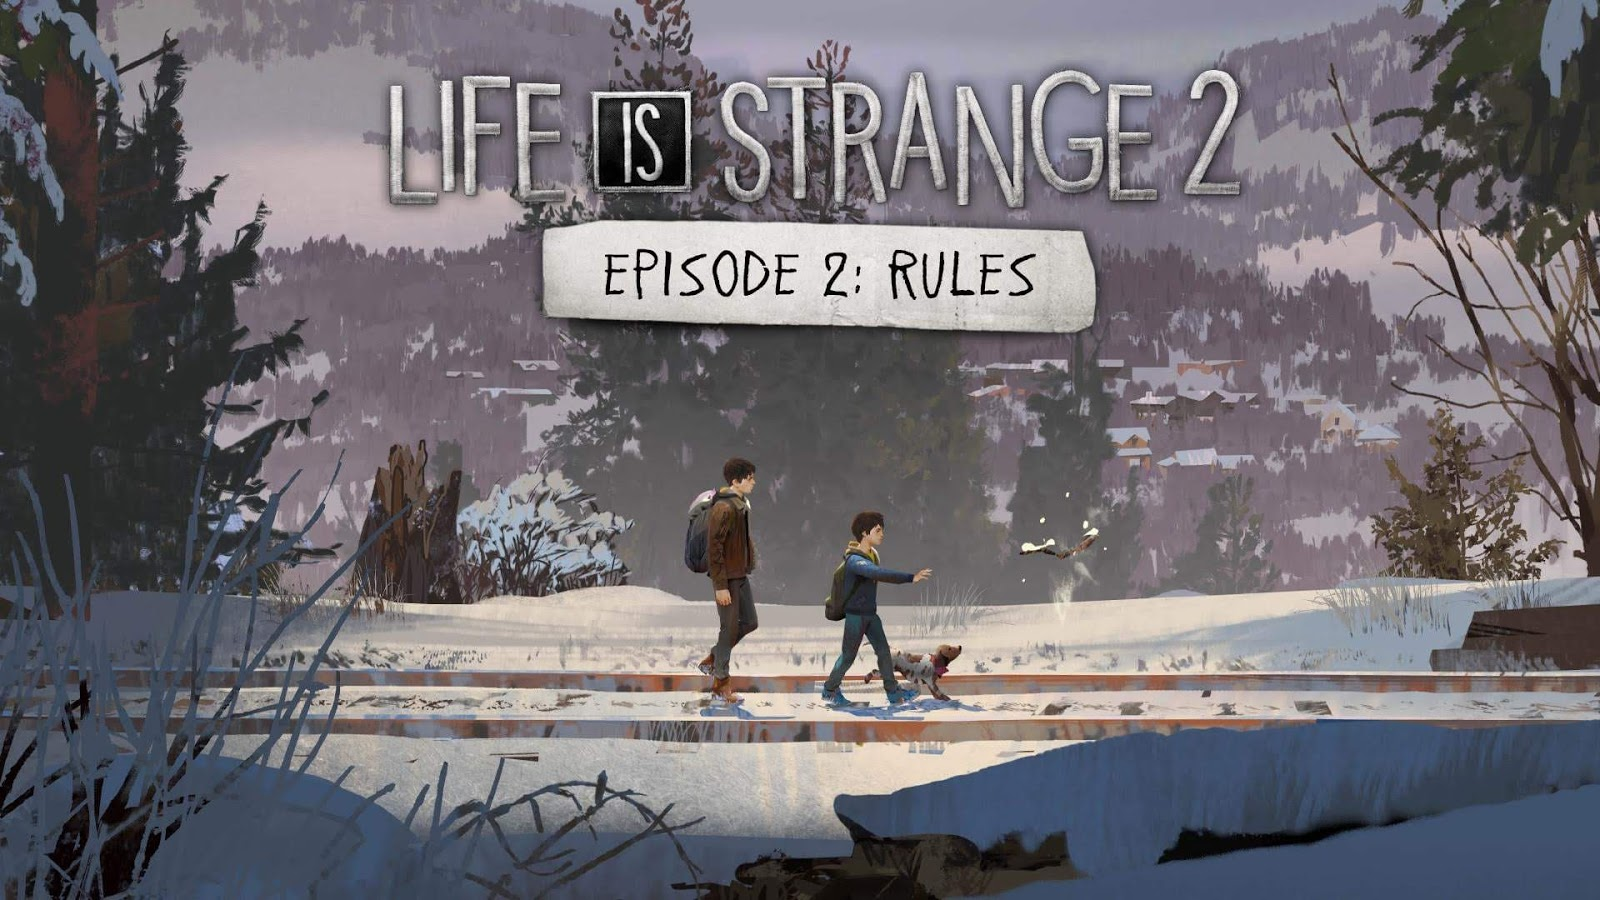 life-is-strange-2-episode-2-rules